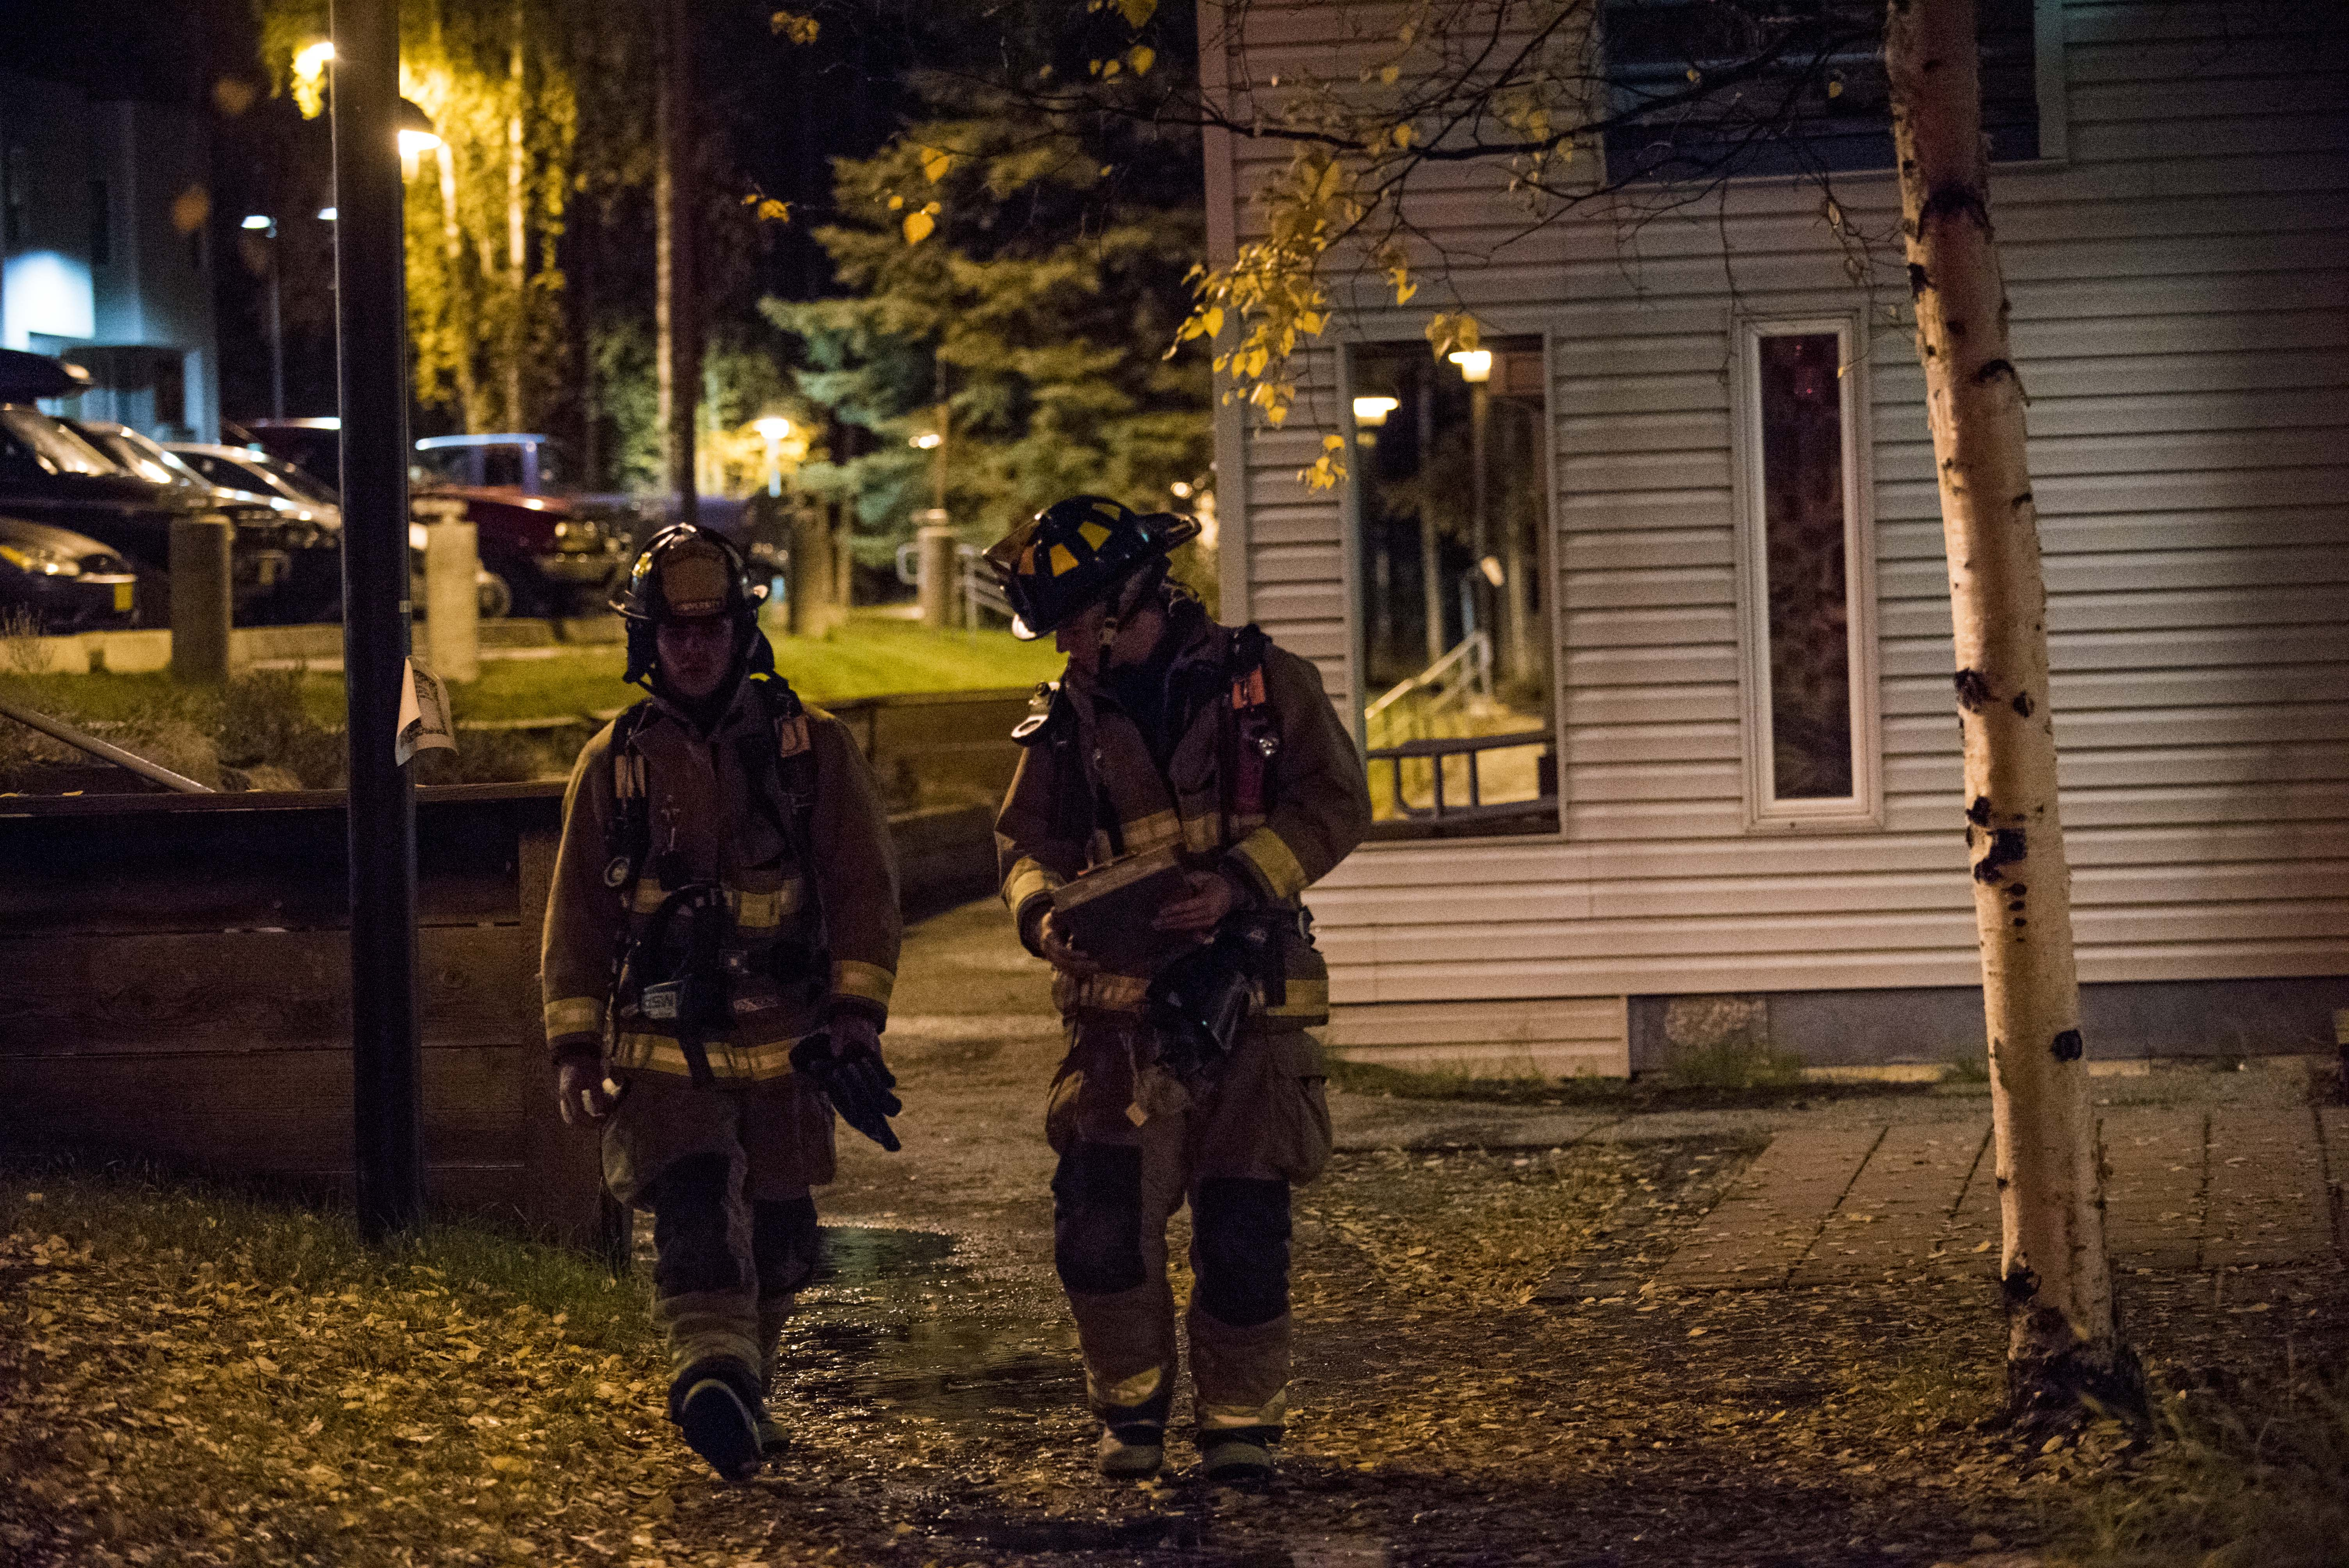 Two firefighters walk back towards their firetruck following a false alarm on Sep. 17 in the Cutler Apartments. - Zayn Roohi / Photo Editor